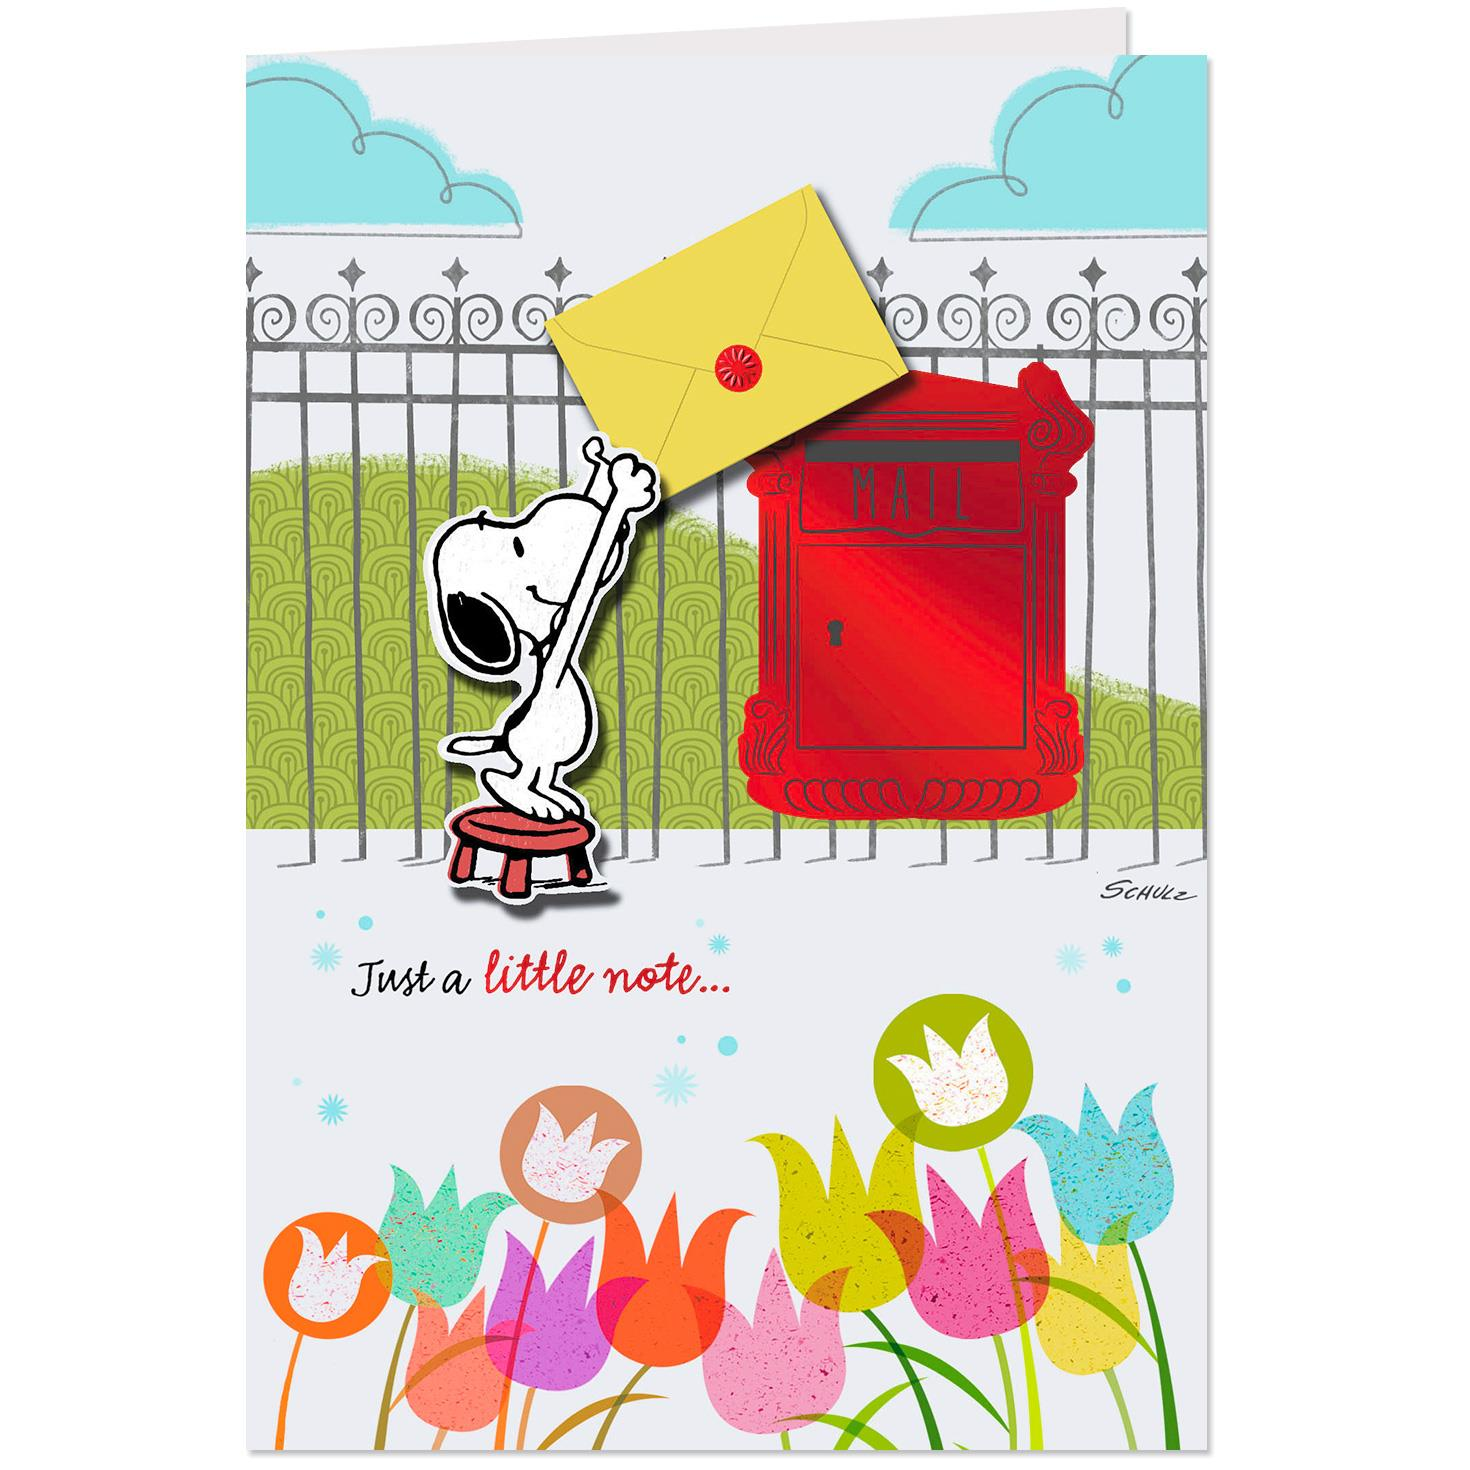 Peanuts Snoopy All The Happy Wishes Birthday Card Greeting Cards Hallmark